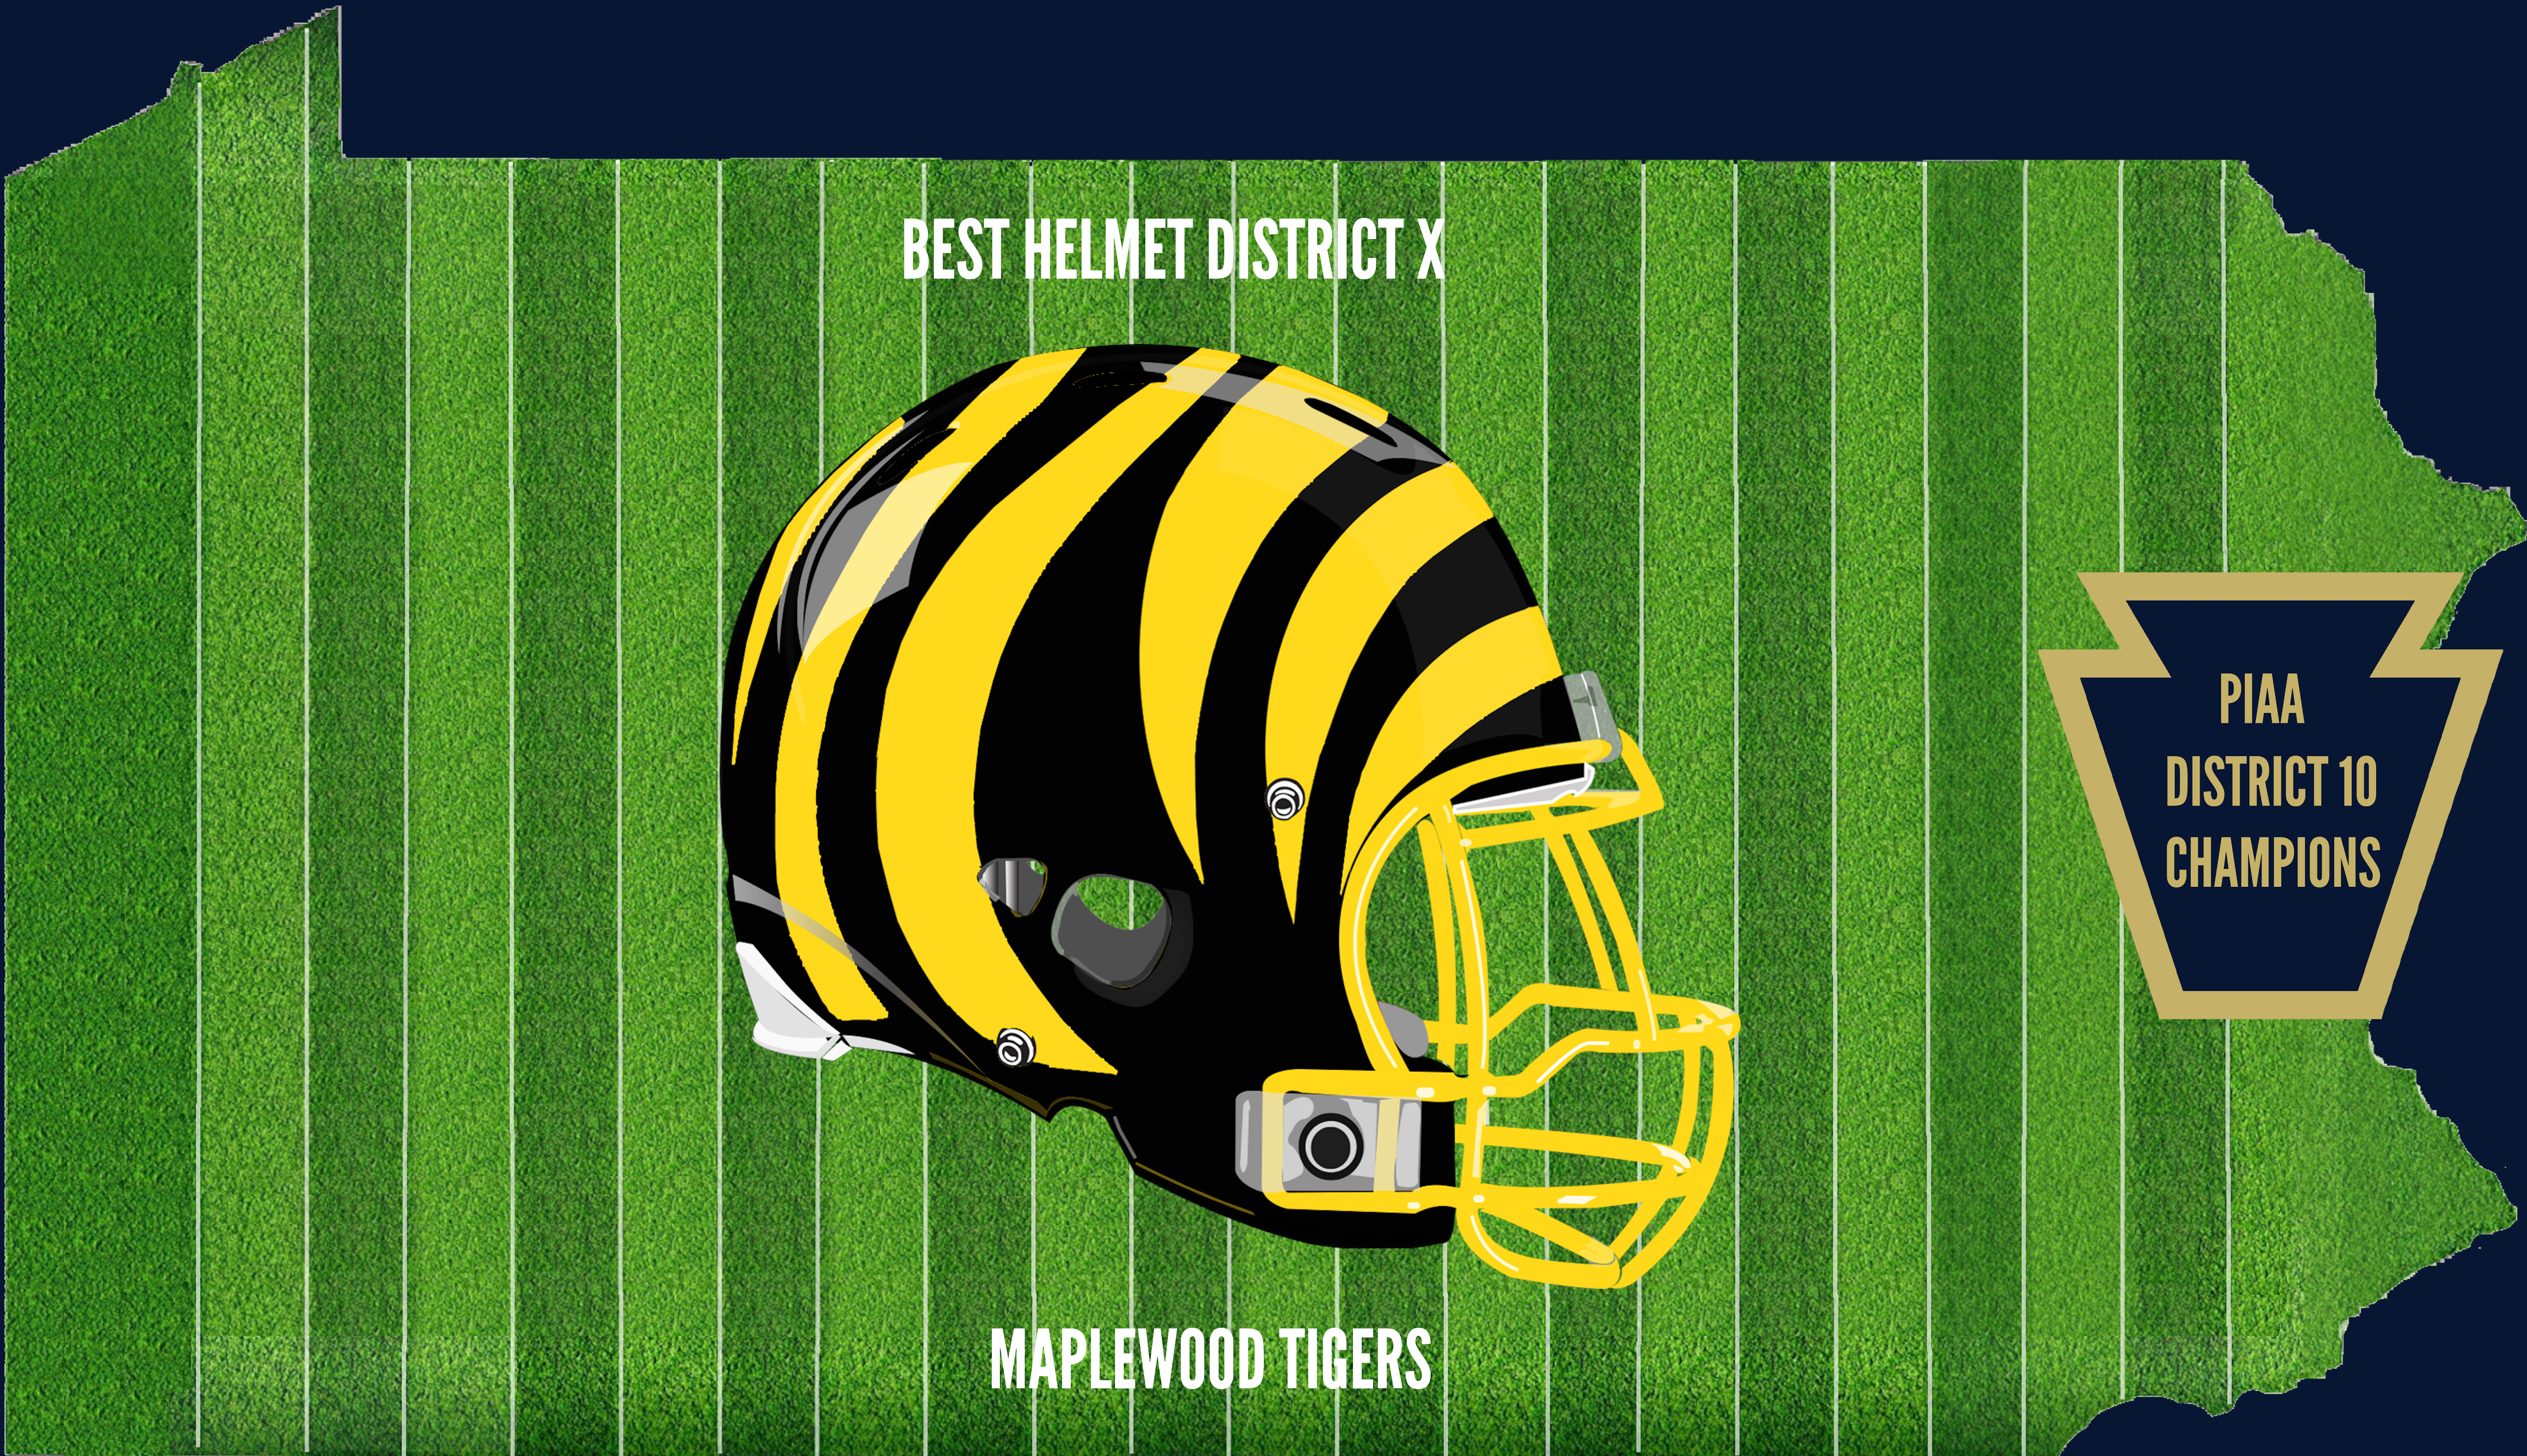 District 10 Champion Helmet